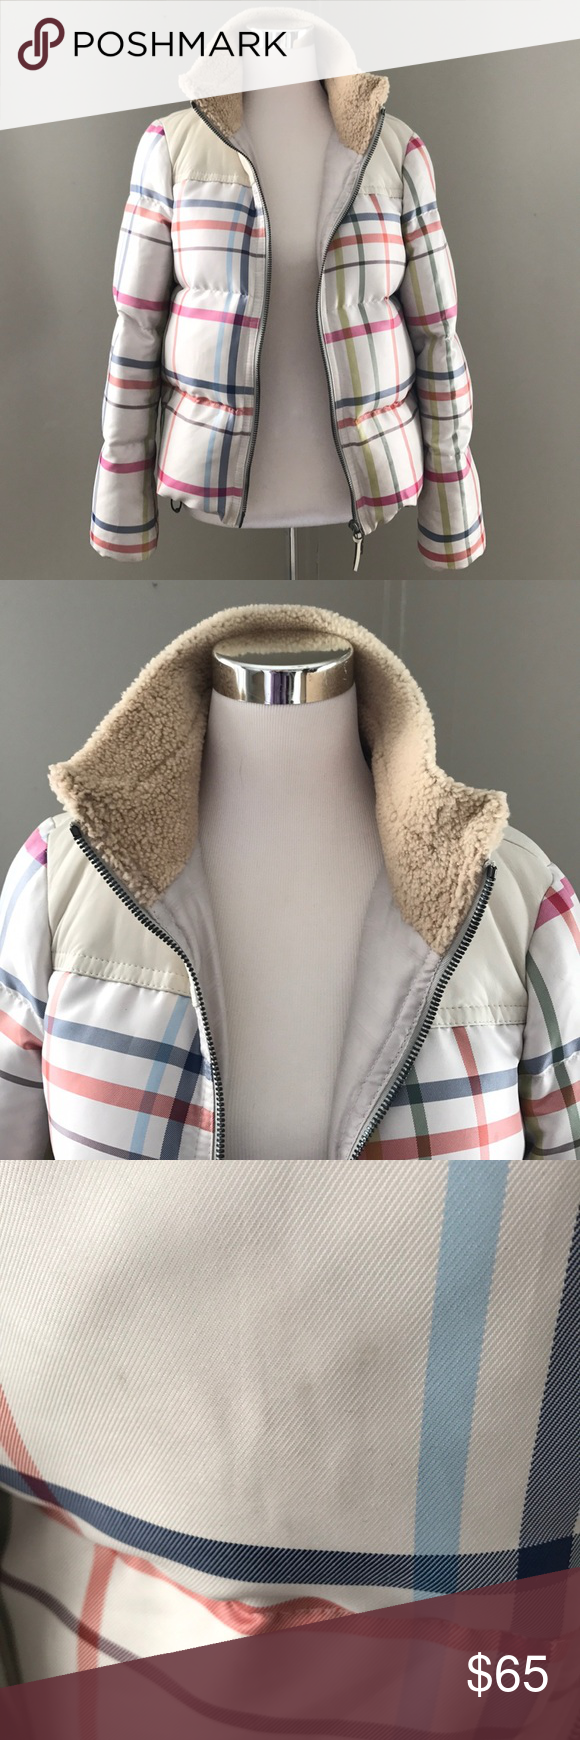 Coach Down Puffer Jacket With Leather Trim Sz S Puffer Jackets Jackets Leather Trims [ 1740 x 580 Pixel ]